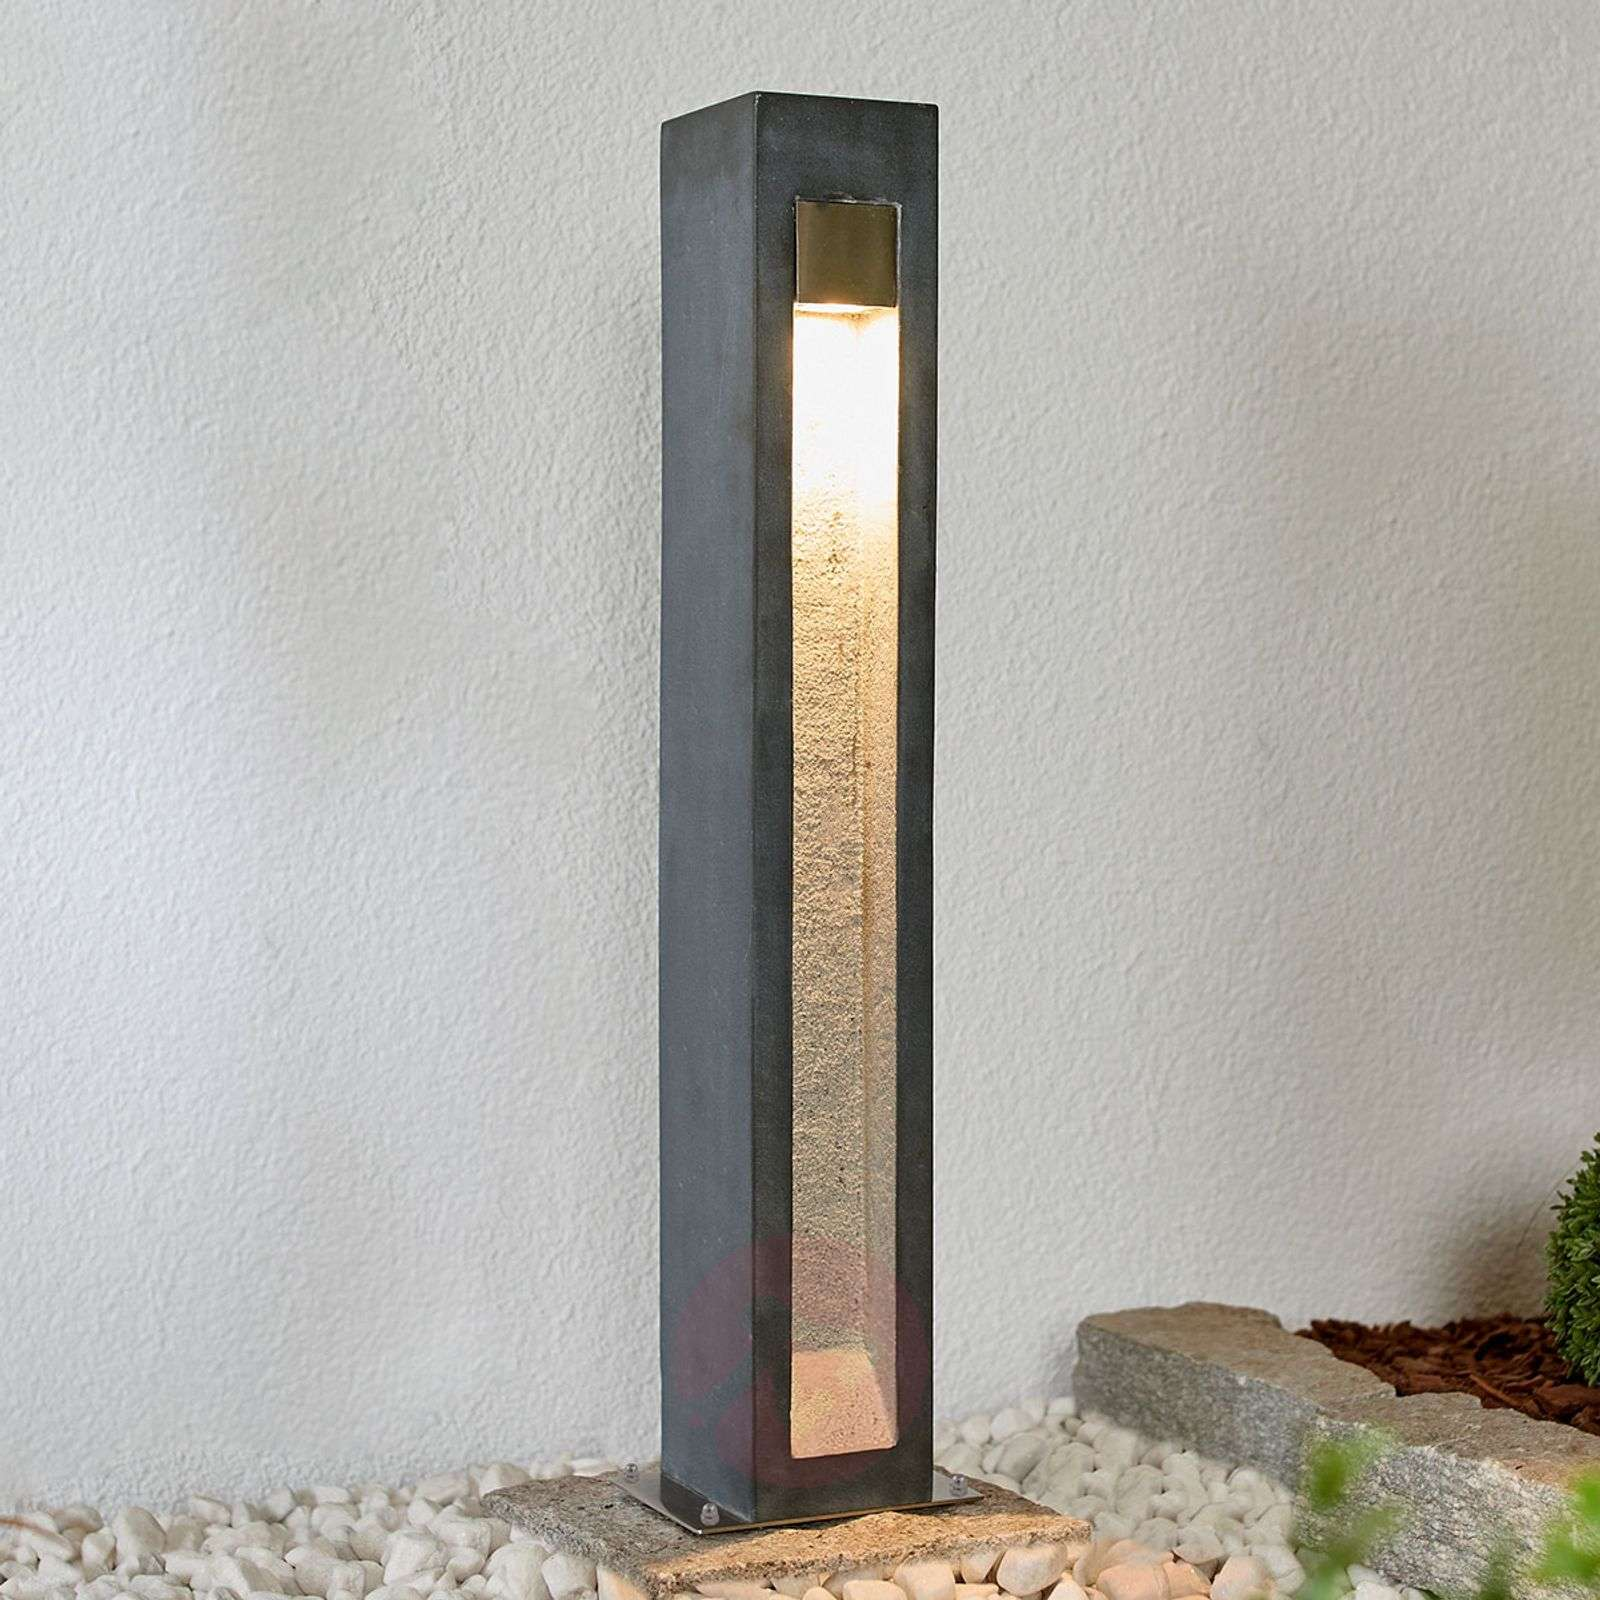 LED bollard light Adejan with basalt rock, 70 cm-9943007-02